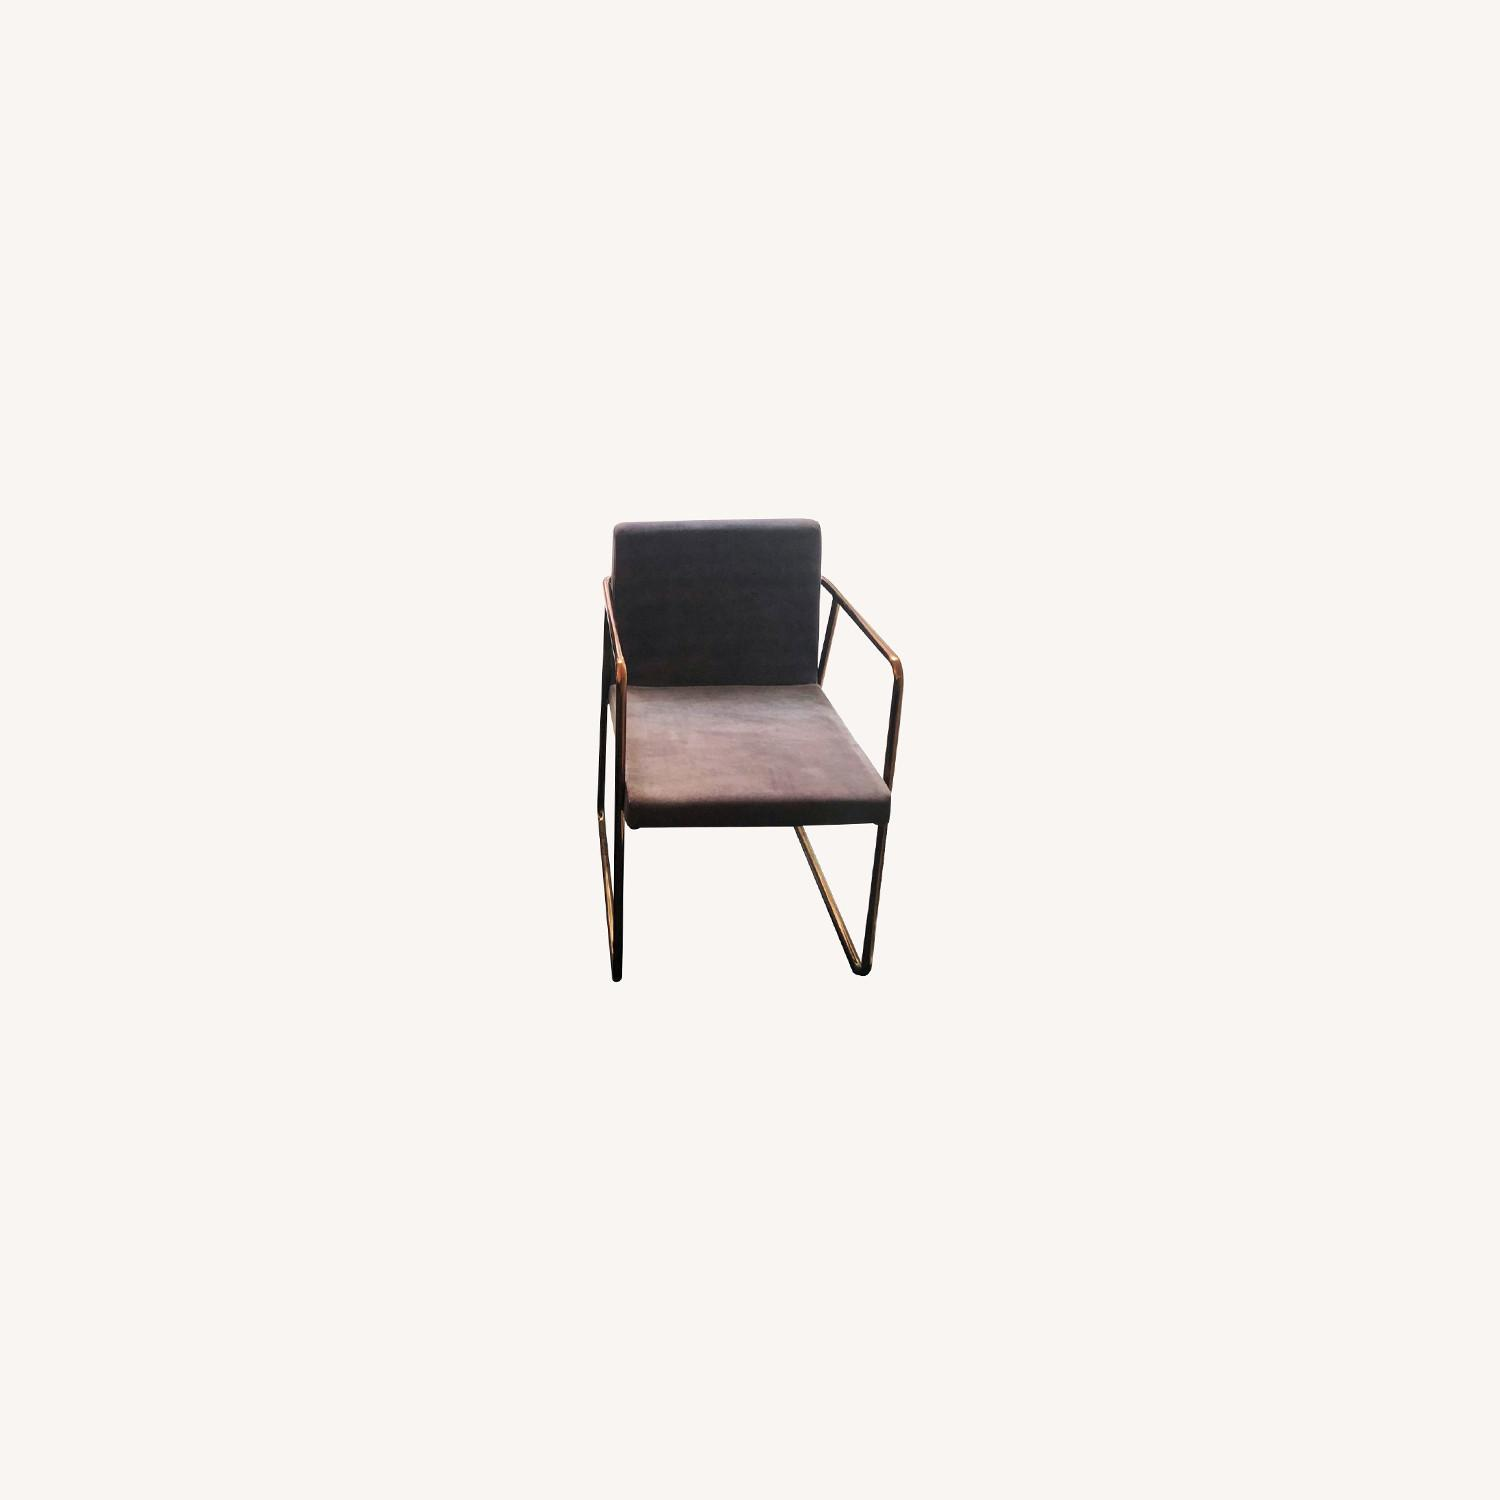 CB2 Rouka Dining Chairs - image-0